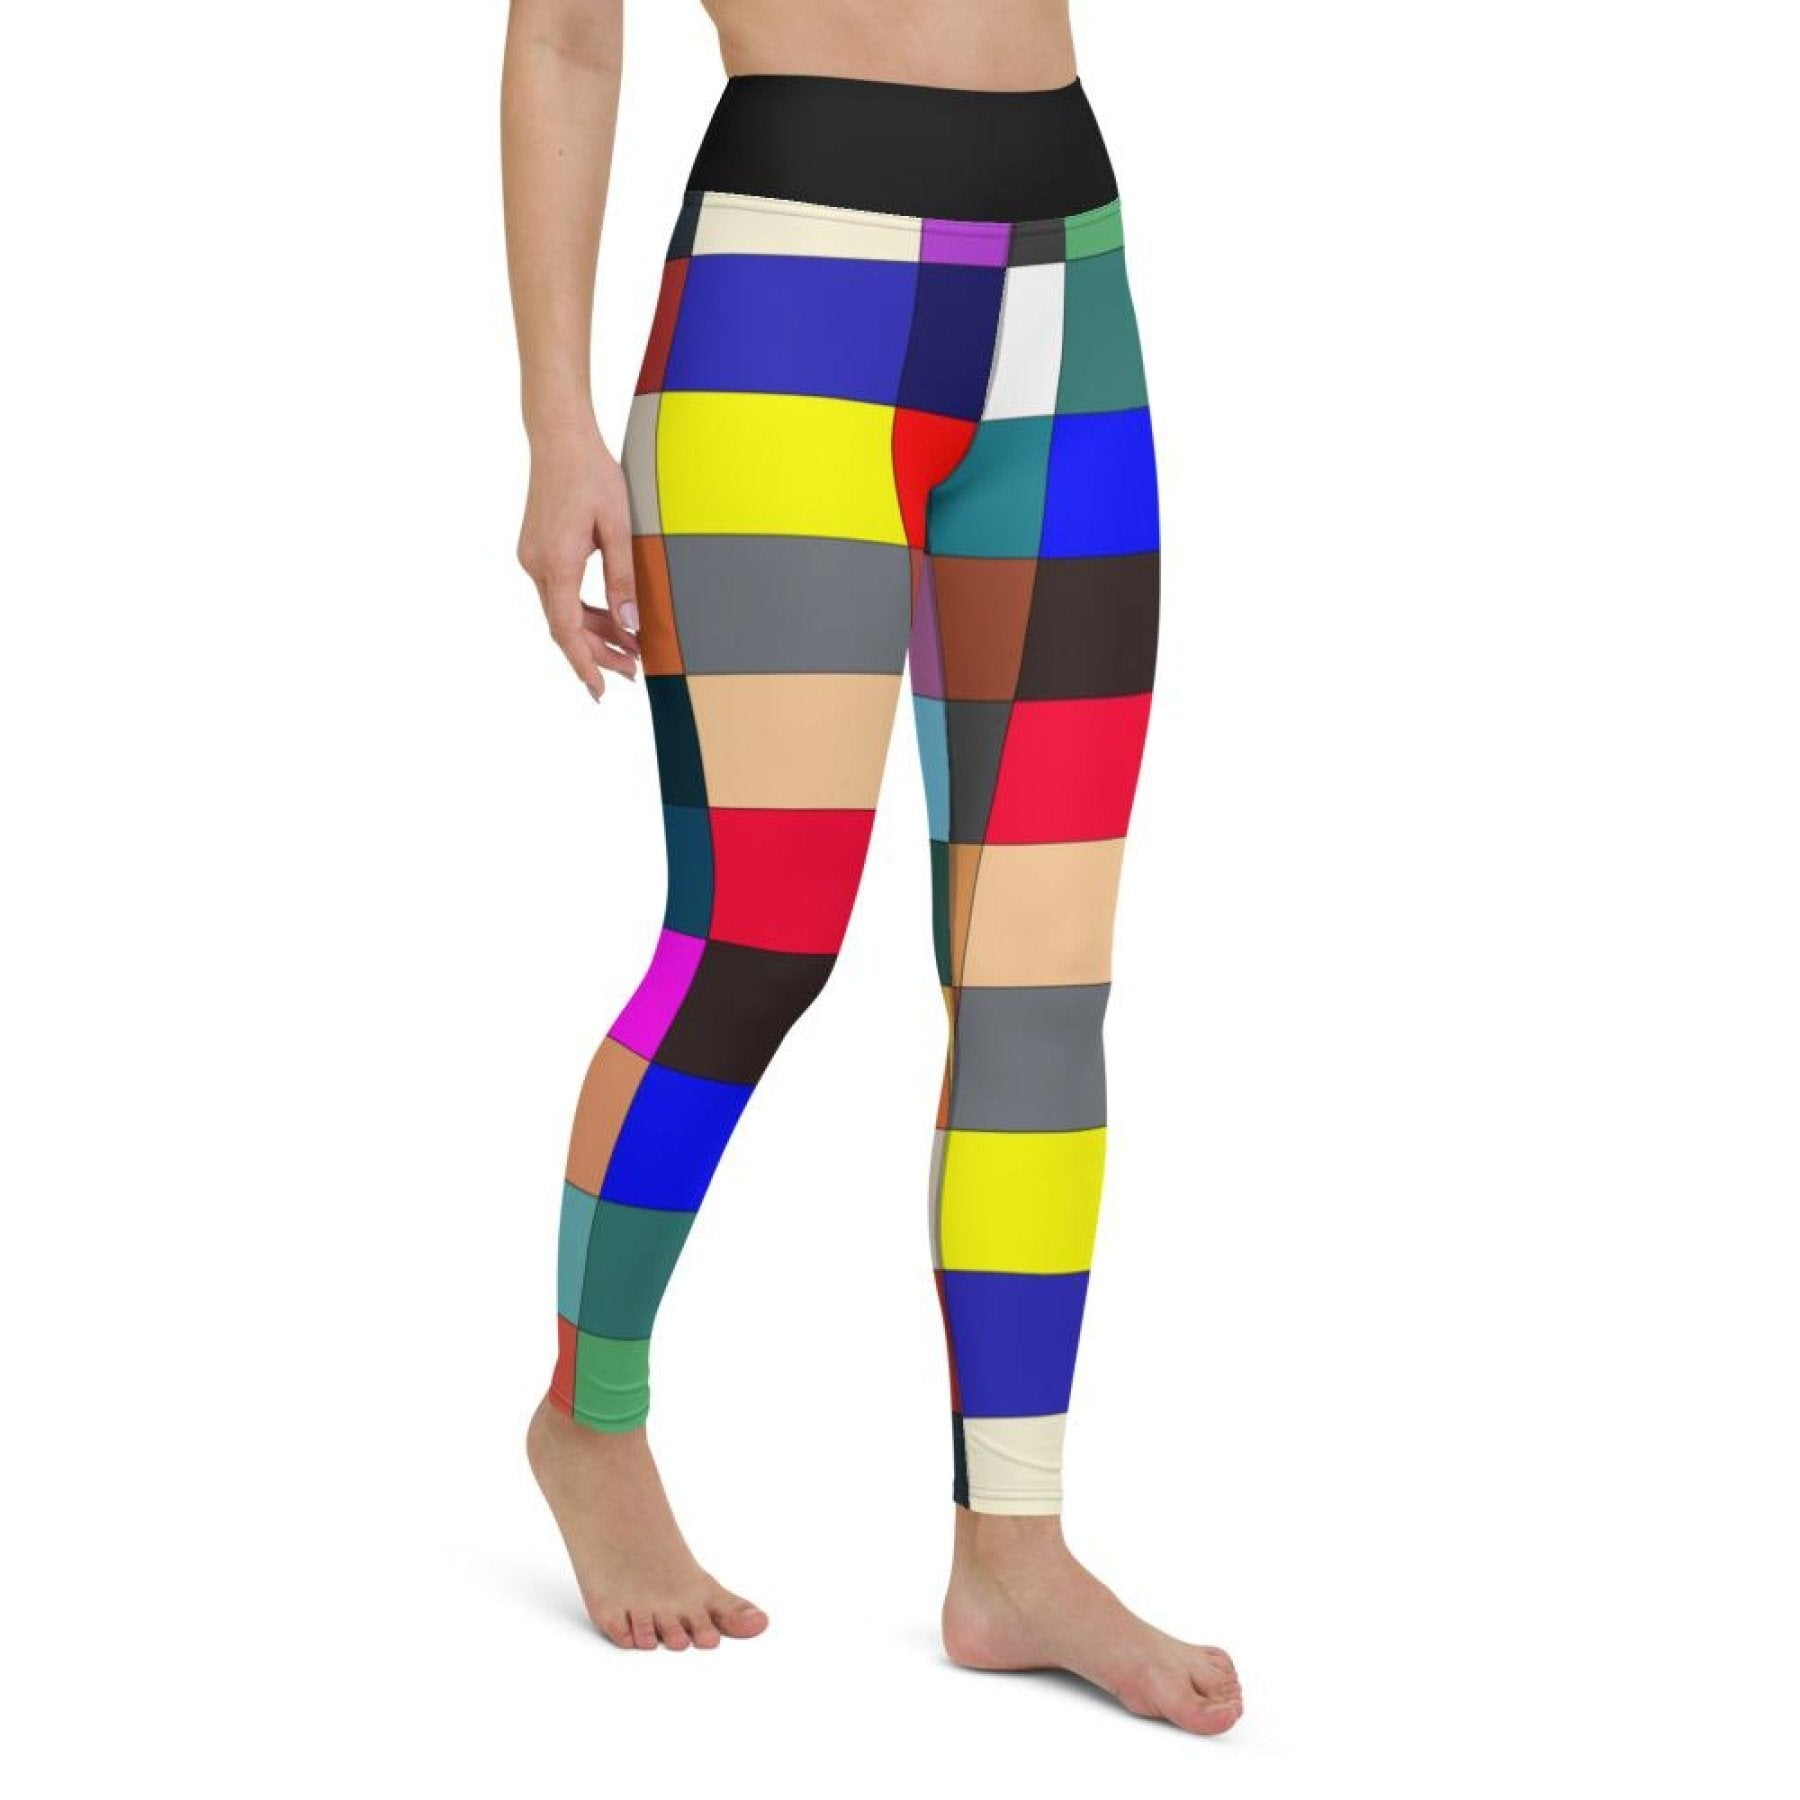 Womens Athletic Pants, Multicolor Block Black High Waist Style Yoga Leggings